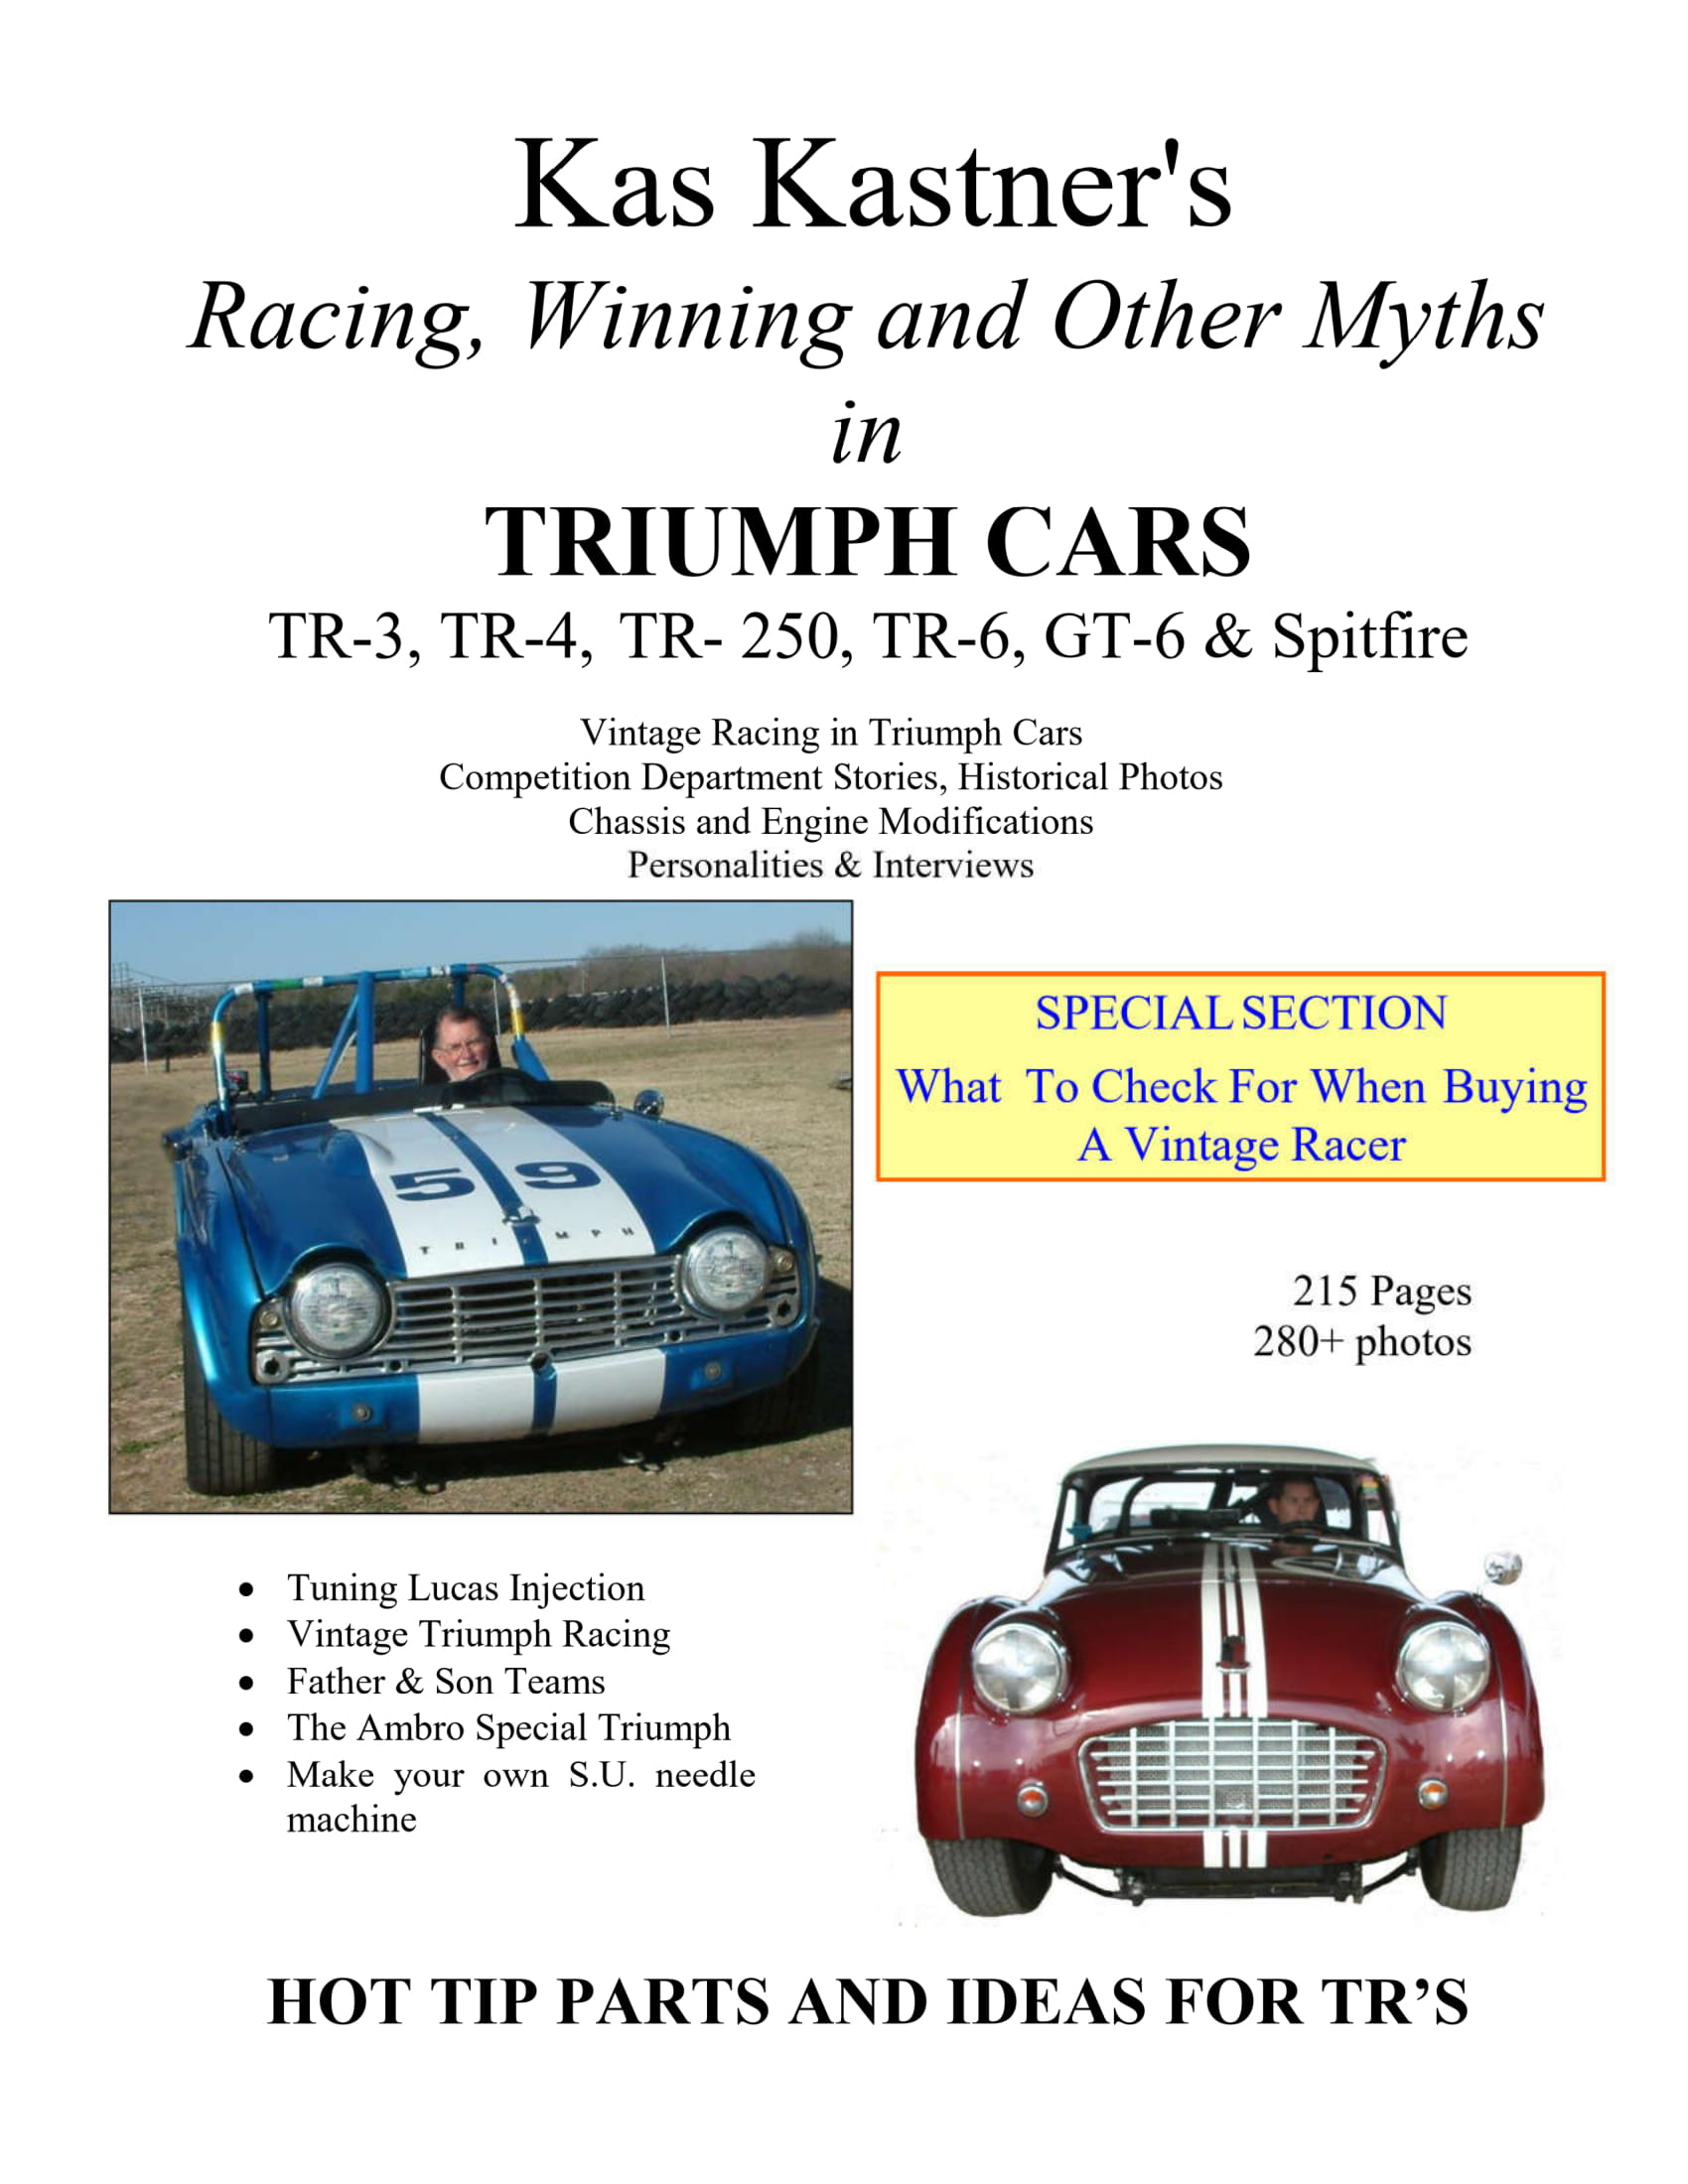 Kas Kastner's Racing, Winning and Other Myths in Triumph Cars